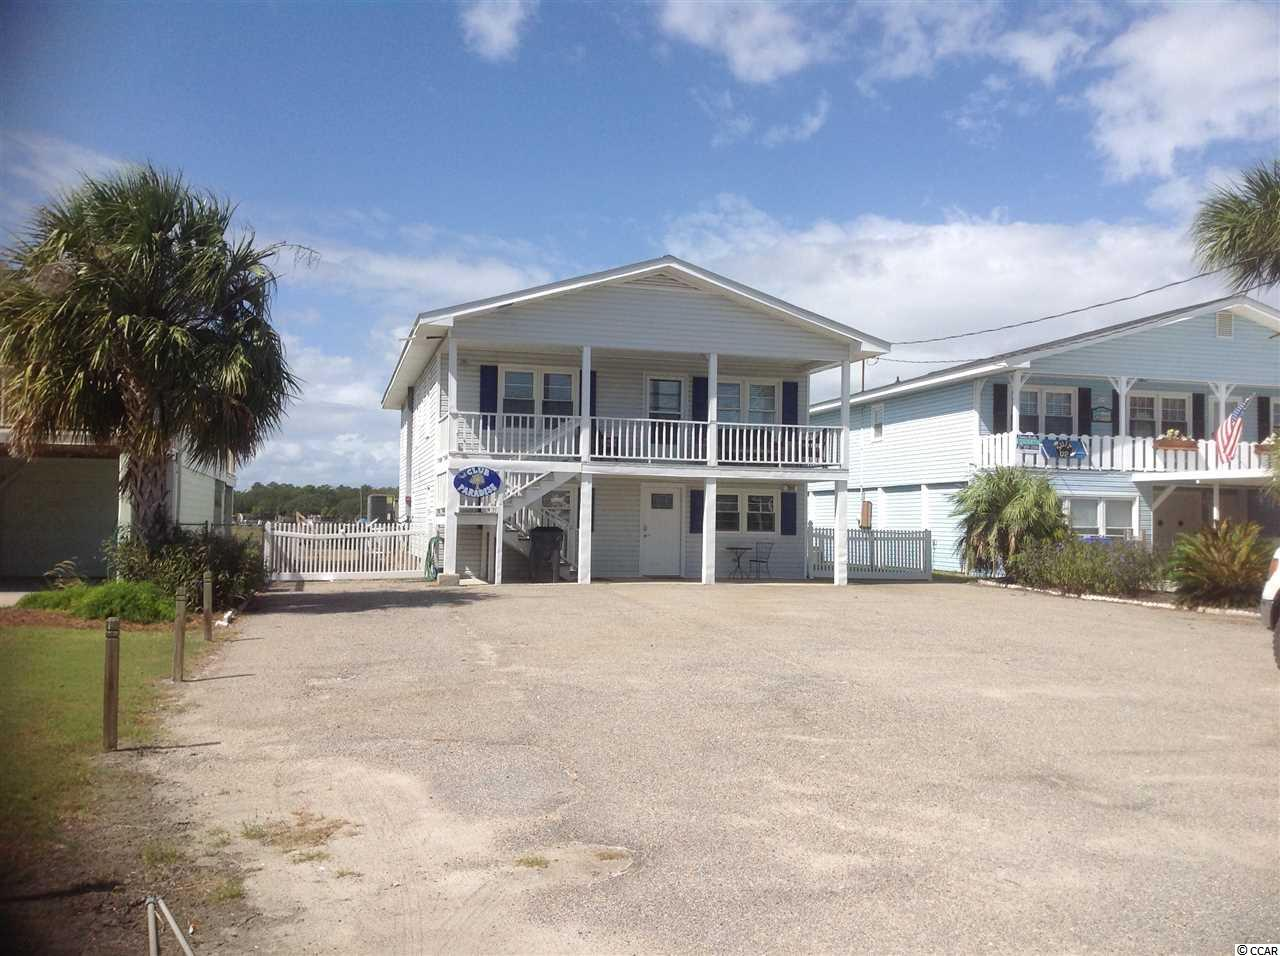 Beautiful 2-story Creek front home in Garden City beach! Enjoy marsh view sunsets from your back deck or pool terrace; watch the sunrise over the ocean from your front porch! This is a fantastic opportunity to own a piece of paradise! This 5 bedroom home is being sold furnished, all that is missing is you and your suitcase. The home offers 2 living areas, 2 kitchens, a rec room, 4 bathrooms, sitting and dining areas, porches, decks, a swimming pool, a floating dock on deep water and more. Located a block off of the ocean and just a short boat ride from some of the finest creek front dining Murrells Inlet has to offer. These types of opportunities do not come along everyday! Square footage is approximate and not guaranteed. Buyer is responsible for verification.